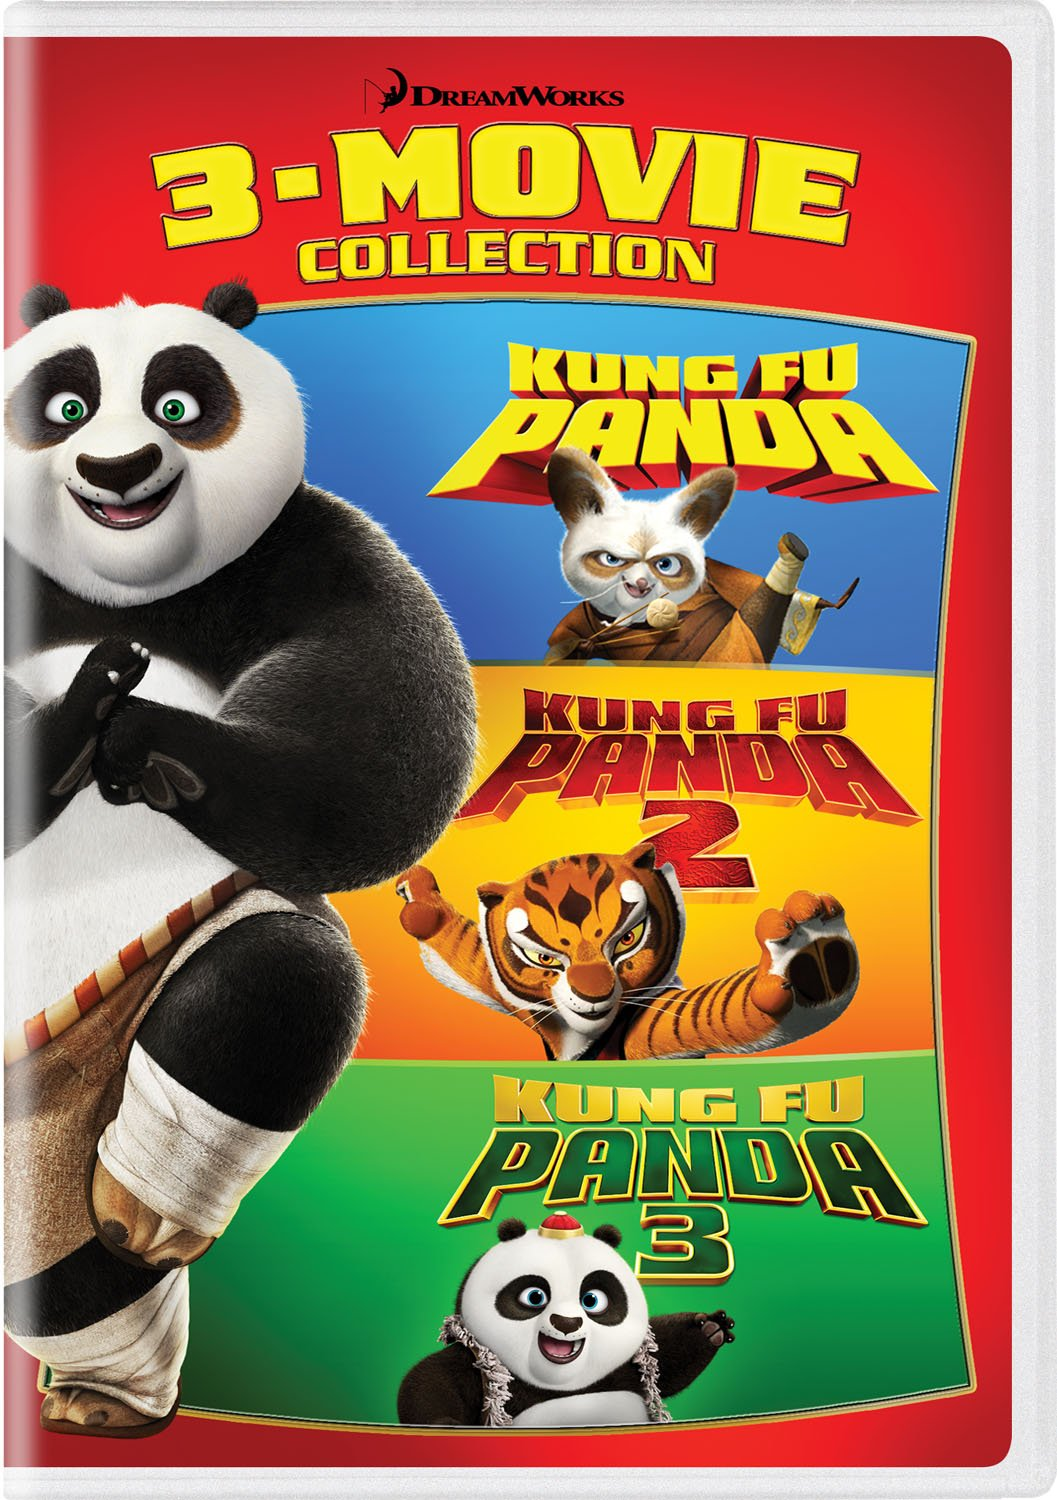 Kung Fu Panda Trilogy (2008-2016) Dual Audio [Hindi + English] | x264 | x265 10bit HEVC Bluray | 1080p | 720p